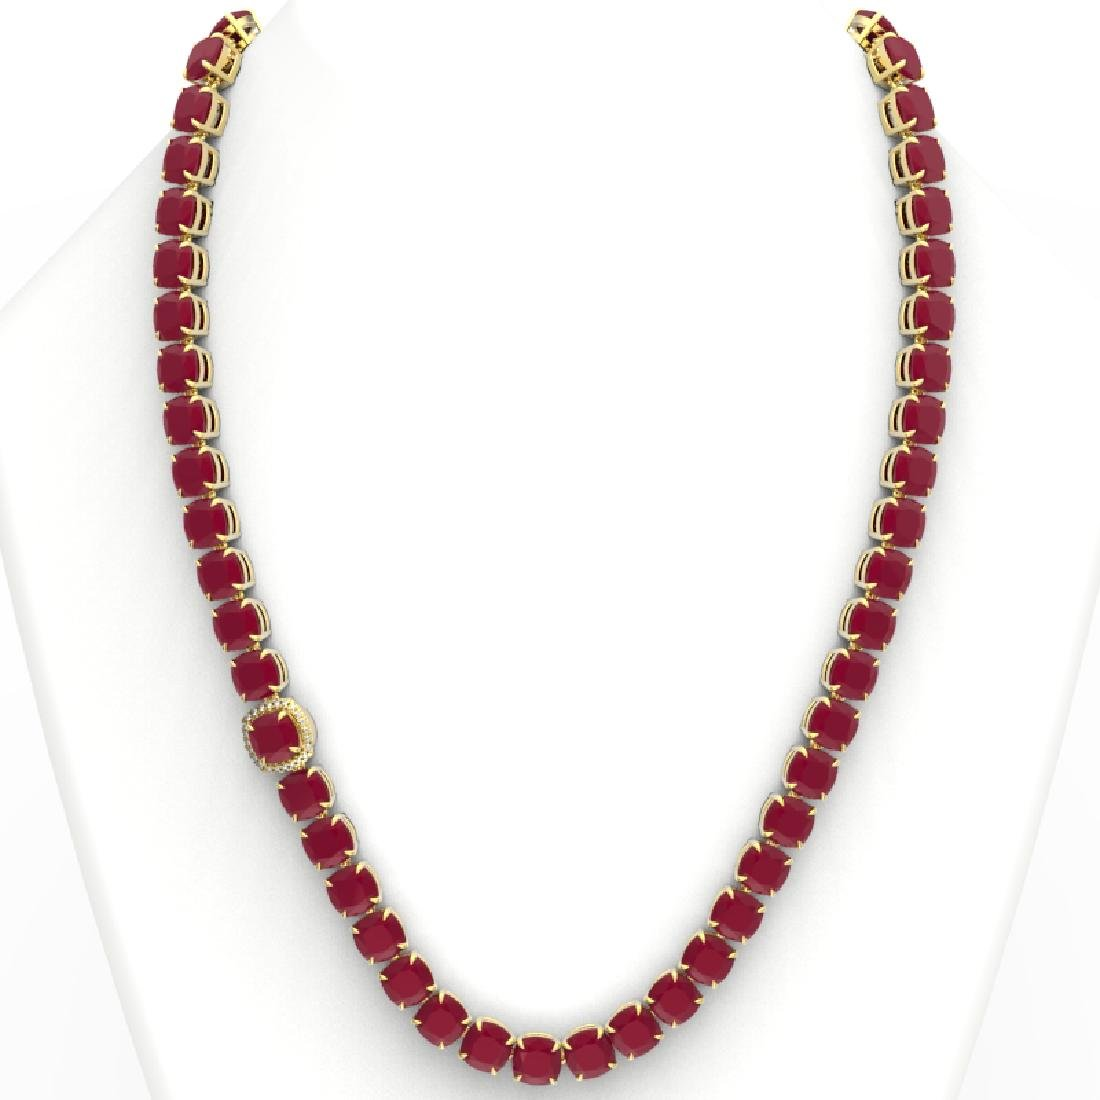 116 CTW Ruby & VS/SI Diamond Halo Micro Pave Necklace - 3